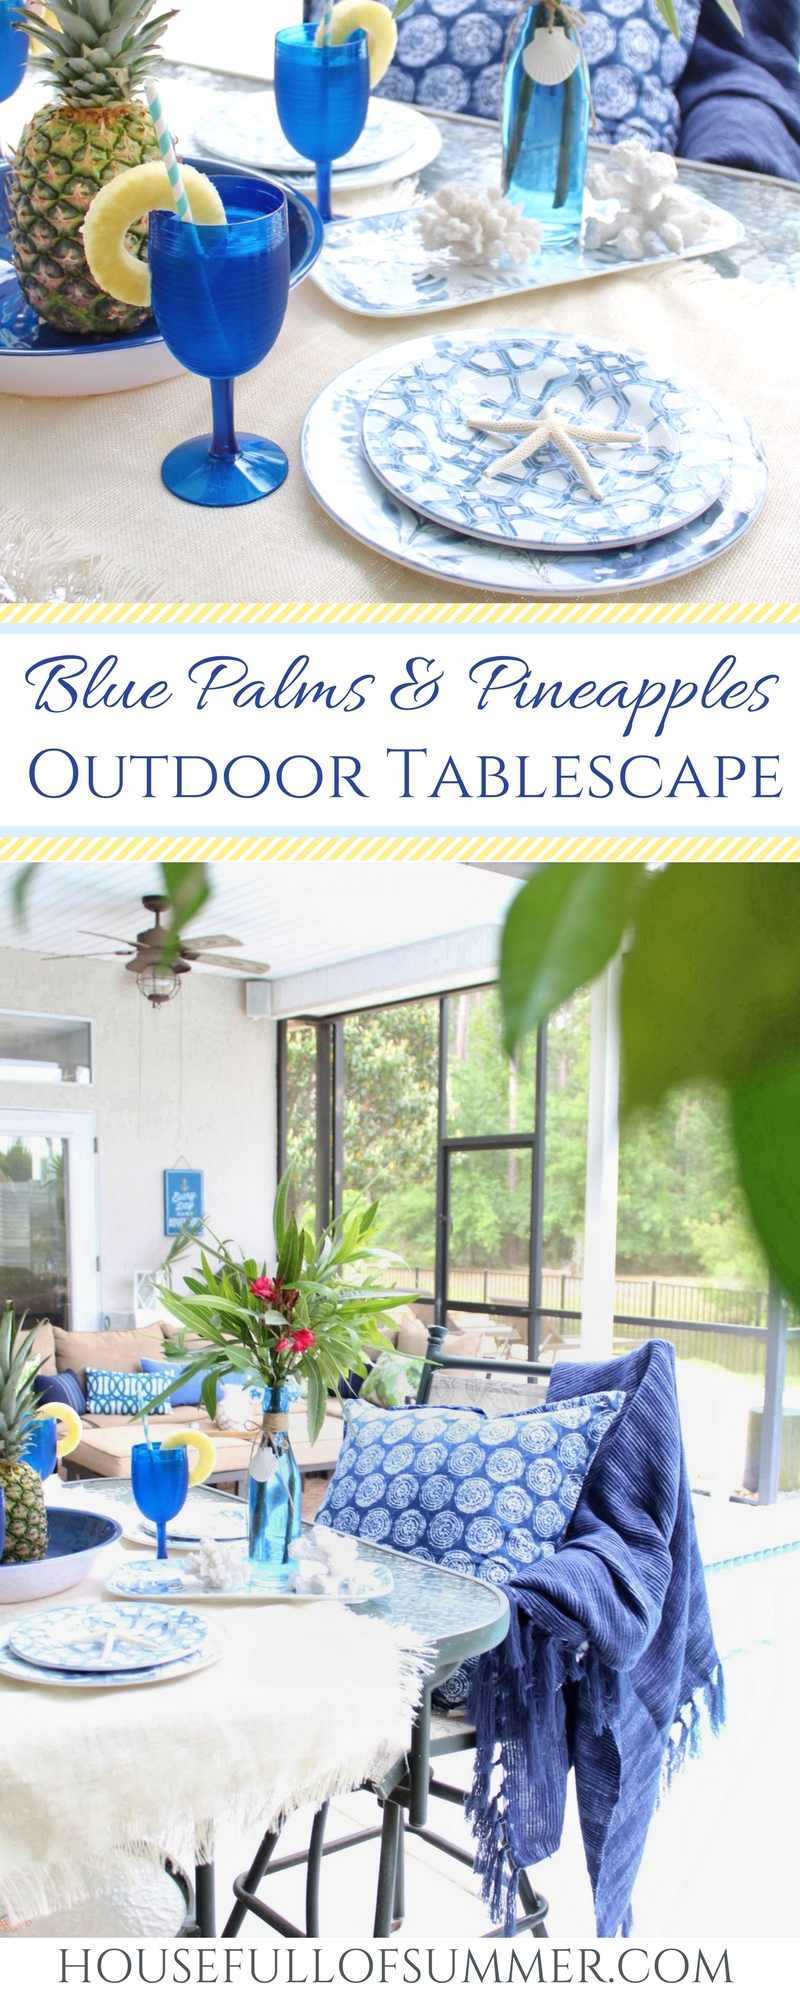 Blue Palms & Pineapples Outdoor Tablescape | House Full of Summer partnership with Christmas Tree Shops andThat! Coastal Living line, outdoor entertaining, poolside dining, plasticware, melamine, tropical dishes, chinoiserie chic, patio decor, coastal tablescape, blue and white table setting, pineapple cocktail, plastic blue wine glasses, navy and white decor, Florida home living, navy and white cushions #ad #Christmastreeshops